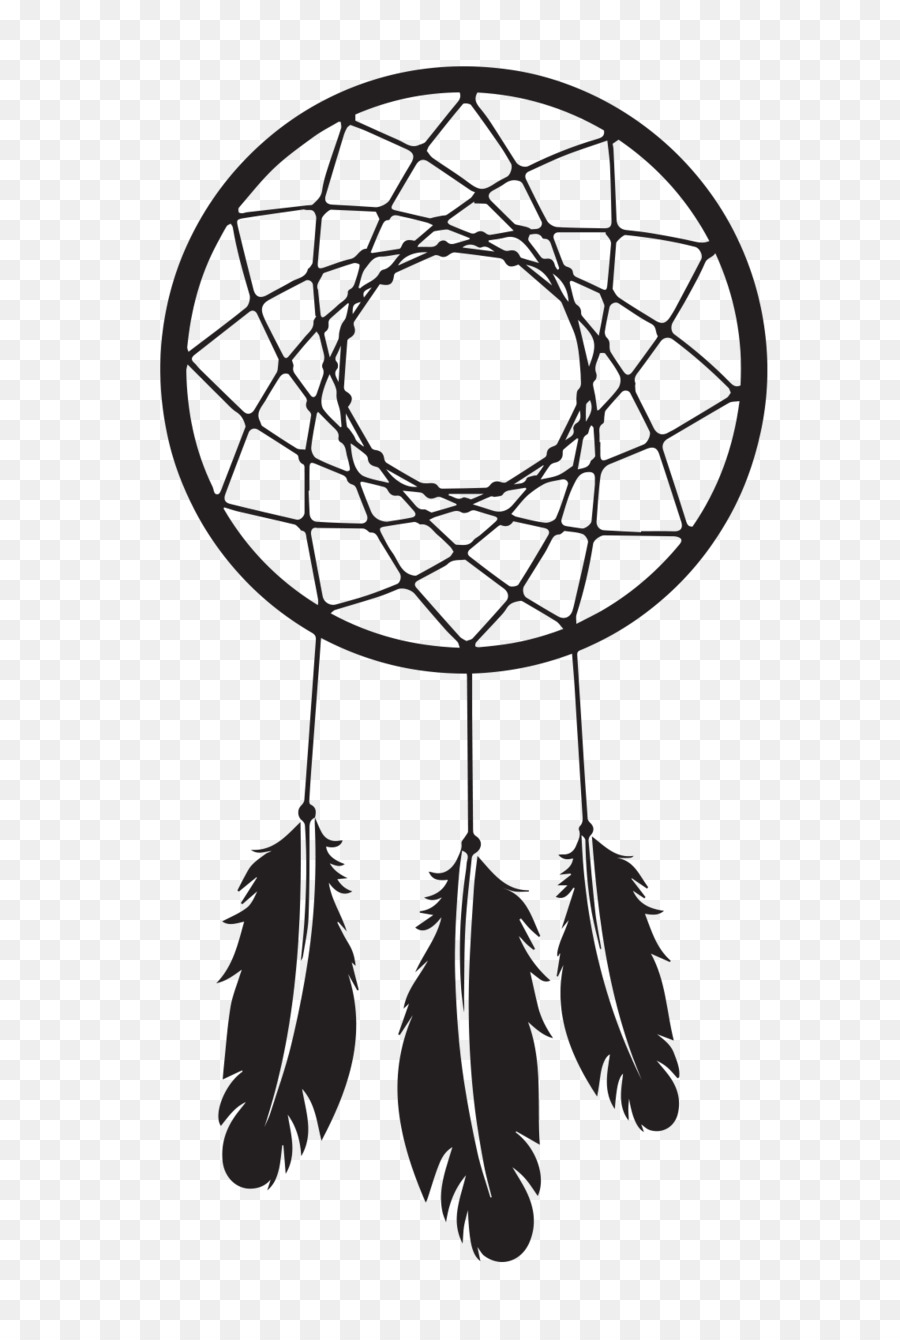 Dreamcatcher Royalty Free Stock Photography Clip Art